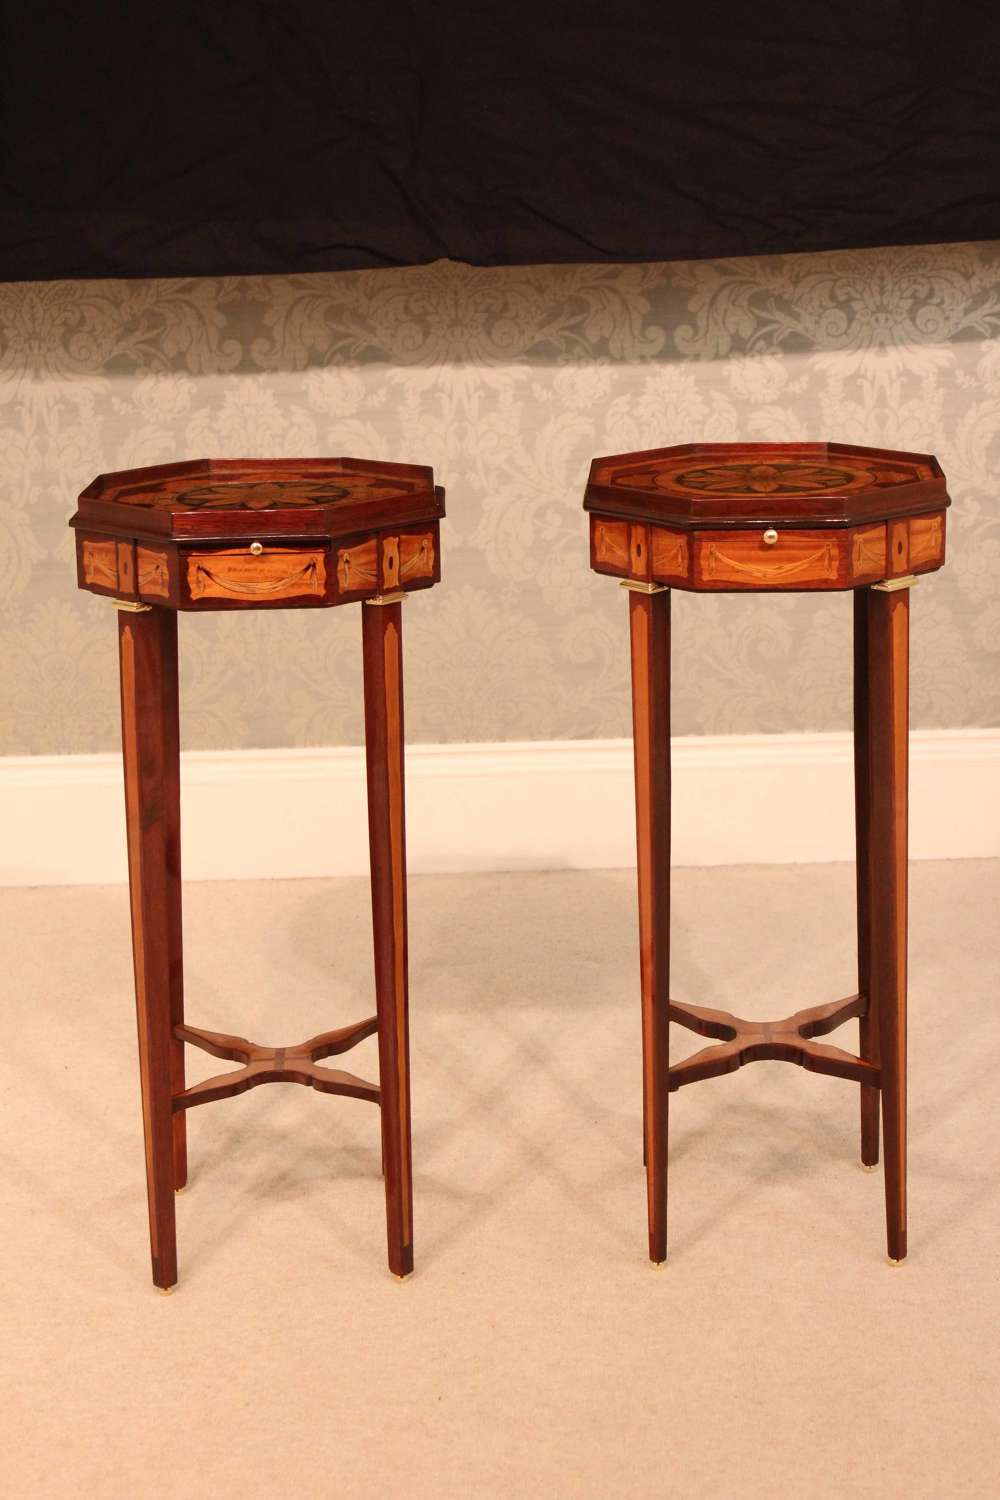 A Fine pair of inlaid Mahogany Victorian Kettle stands